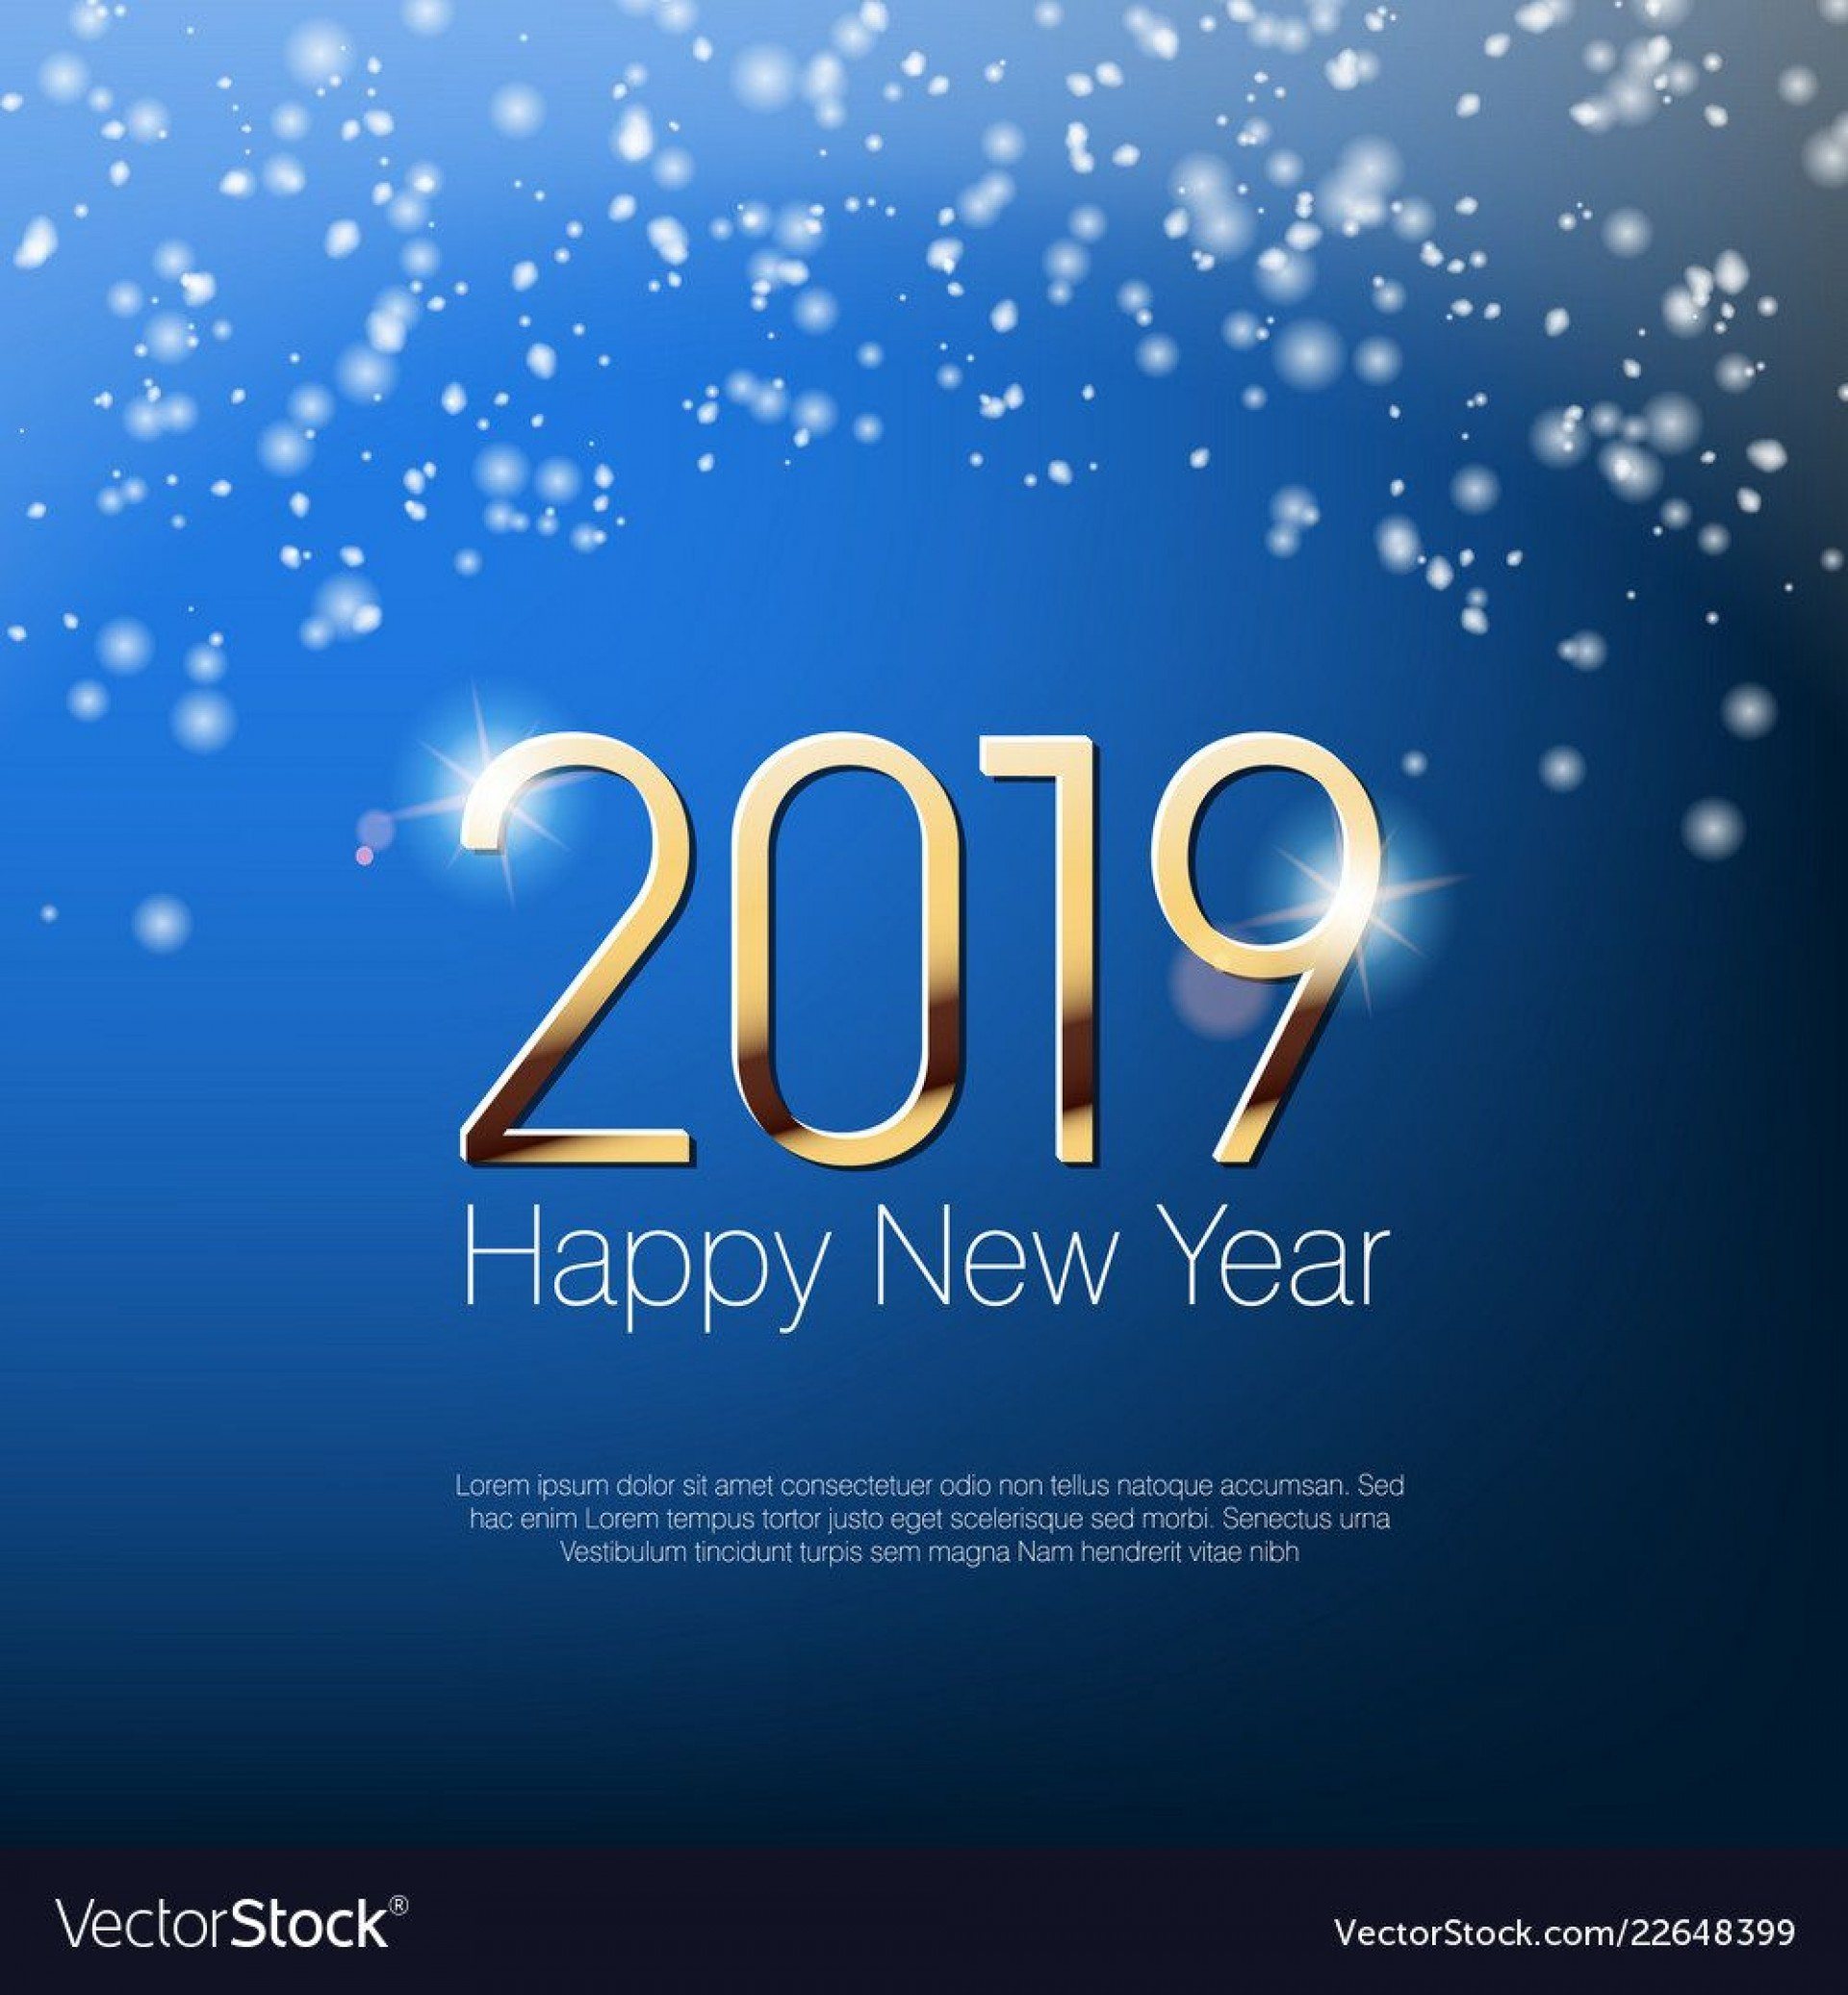 006 Wondrou New Year Card Template Highest Quality  Happy Chinese 2020 Free1920